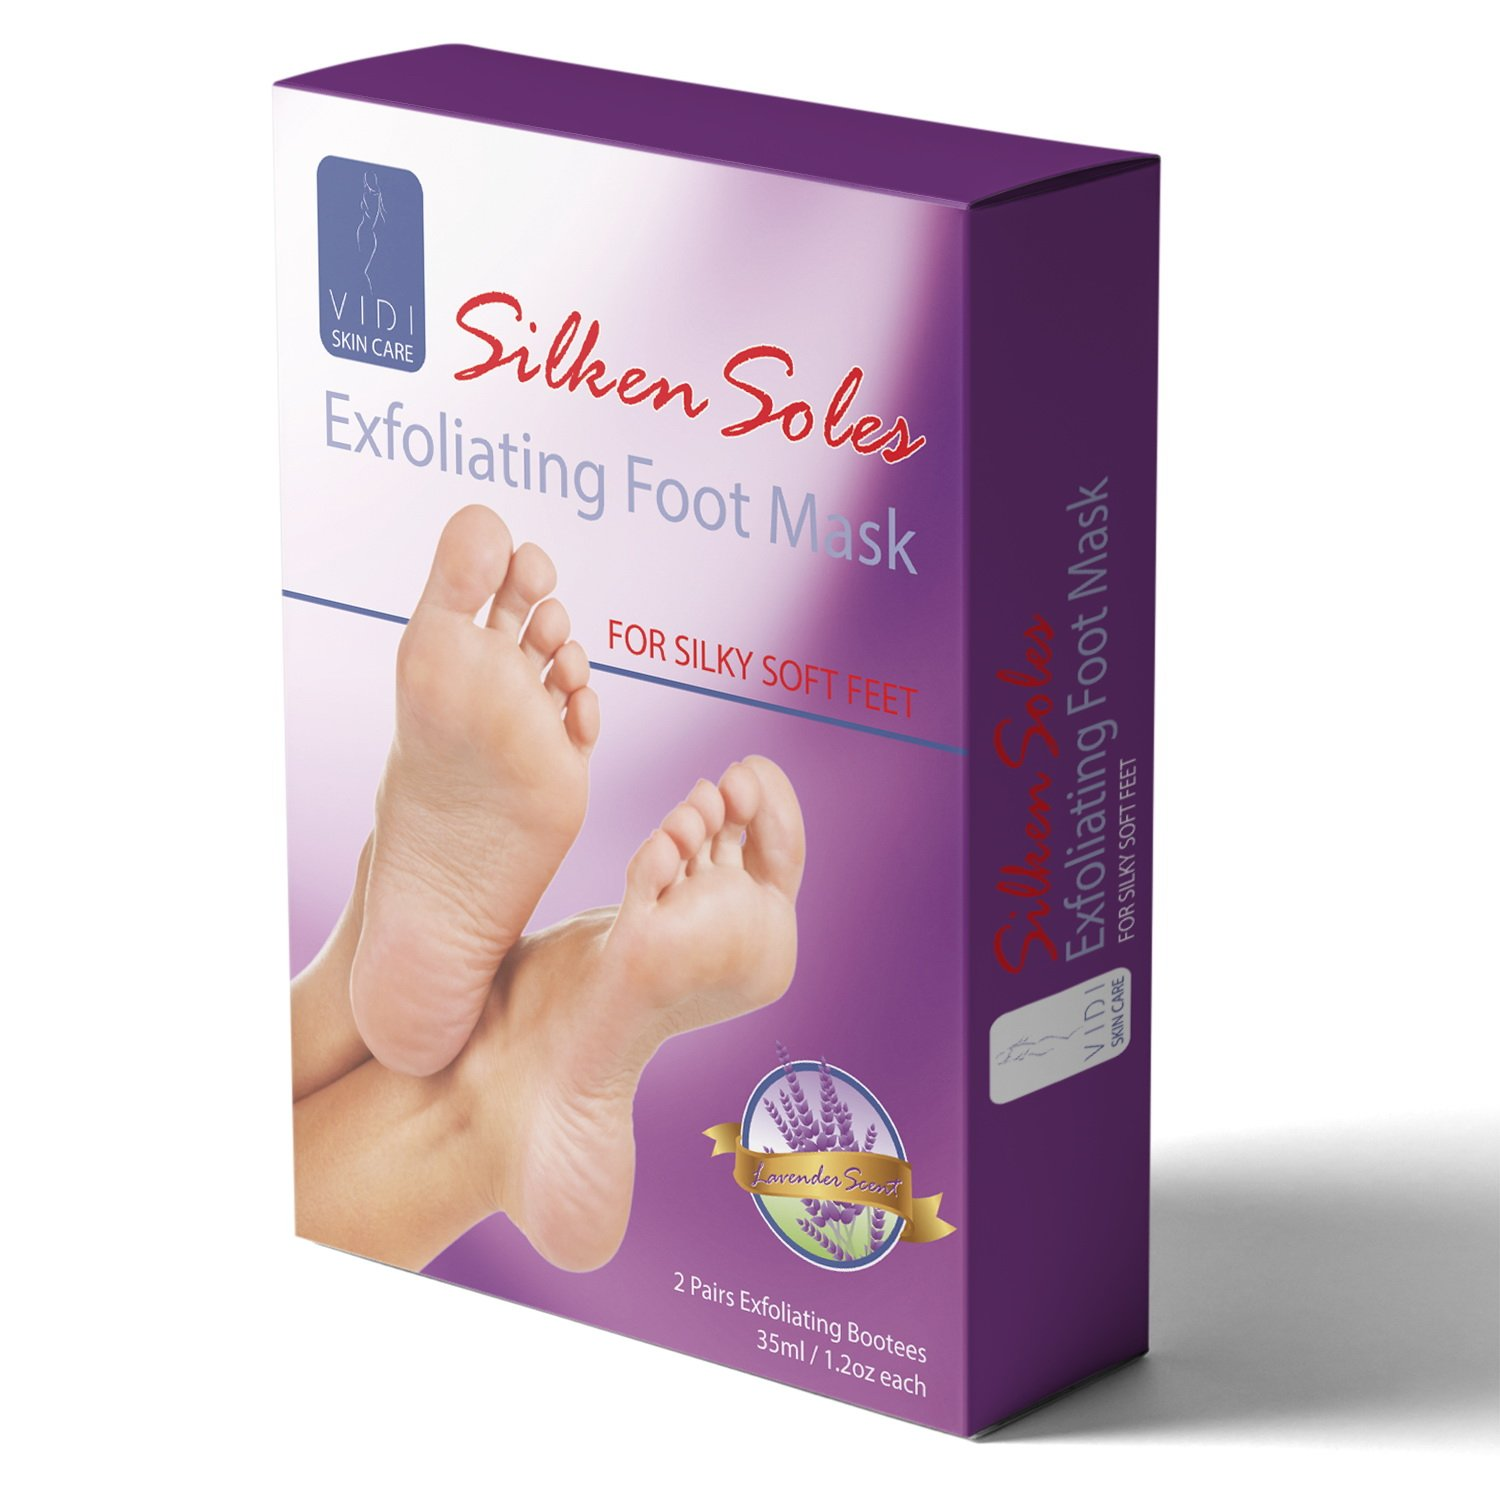 Foot Peel, Foot Mask Exfoliant, (2 Pack) Lavender Foot Exfoliator, Foot Skin Remover for Baby Soft Feet, Silken Soles by VIDI